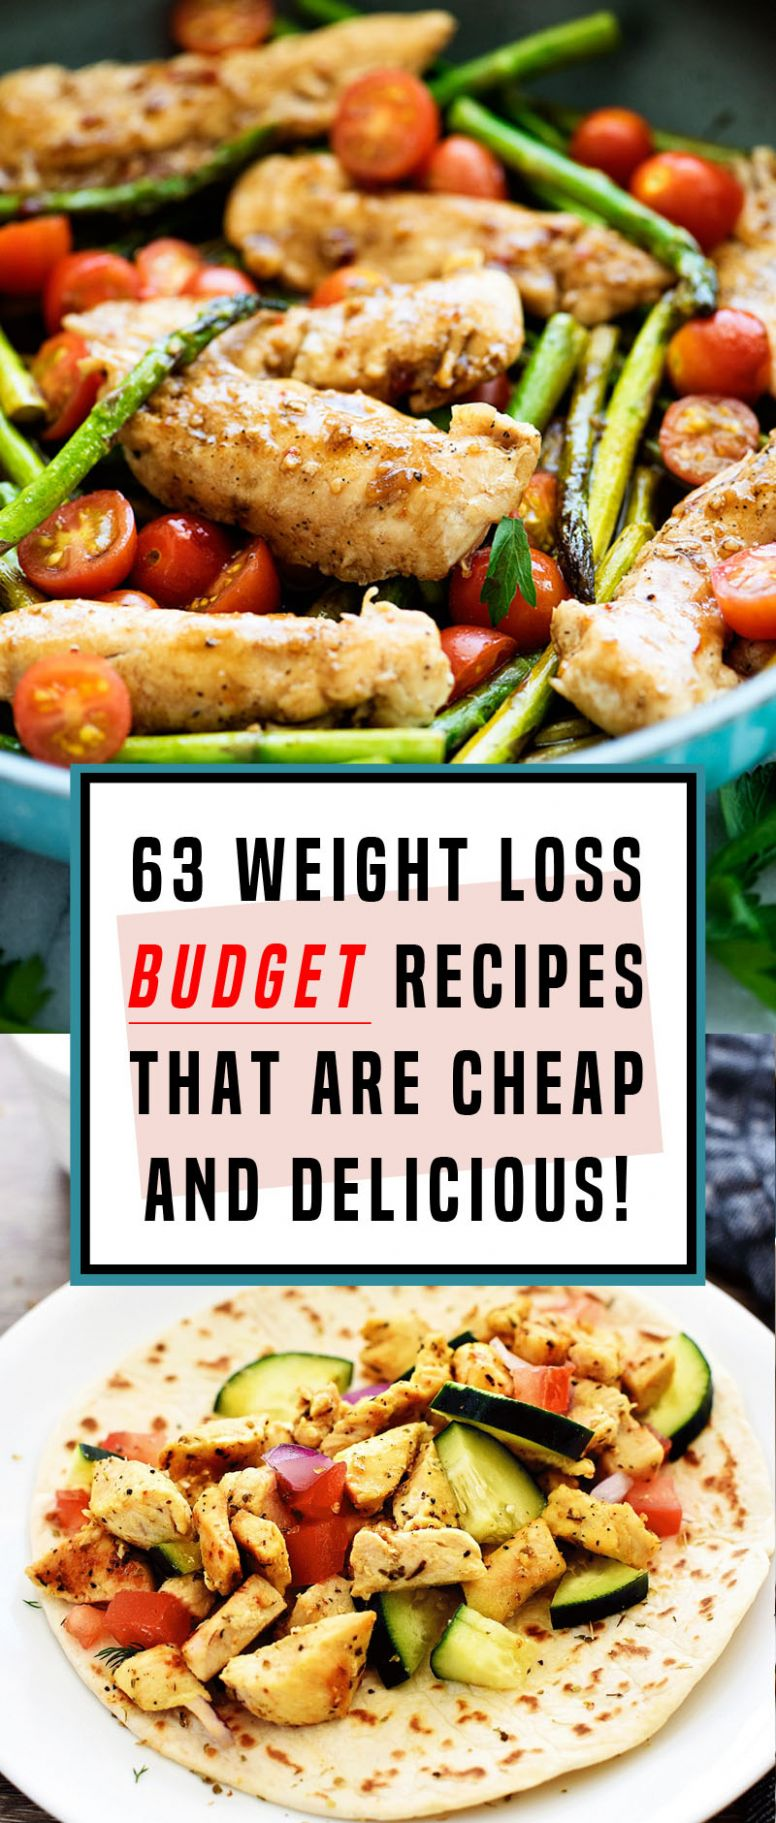 12 Budget Weight Loss Recipes That Will Help You Lose Fat, Not ..